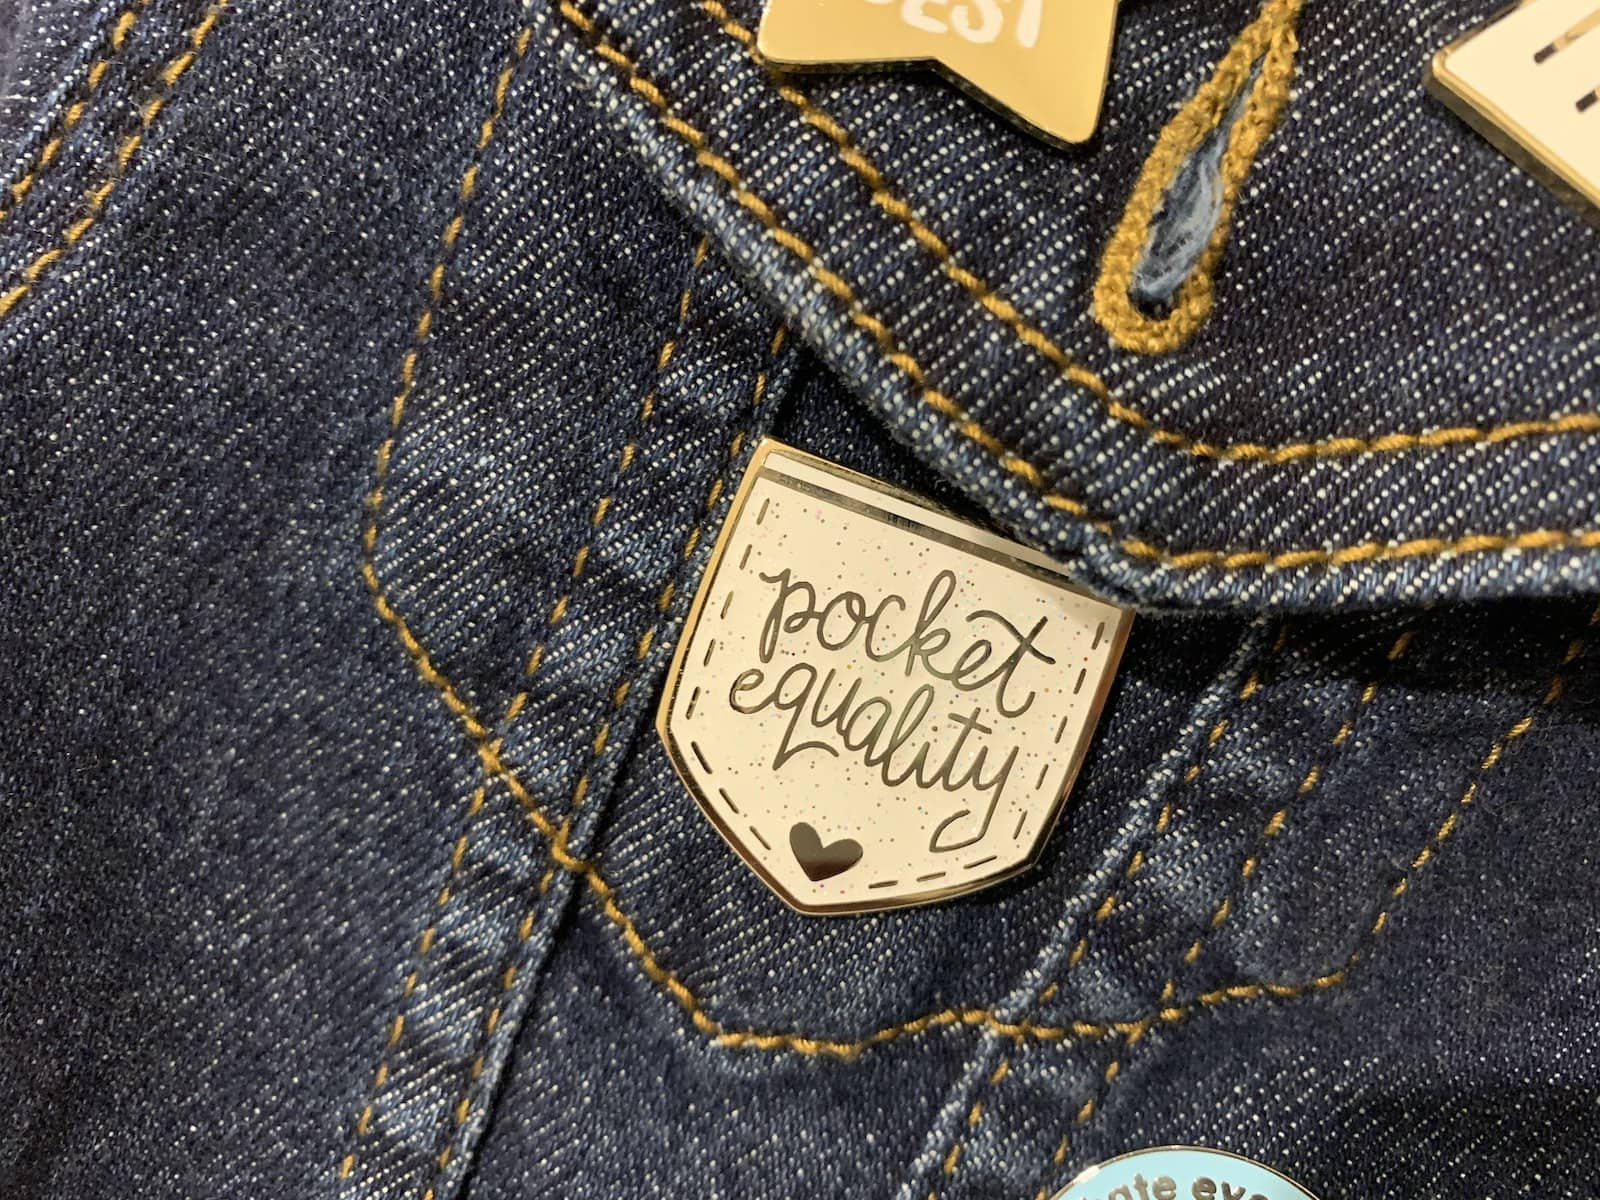 "A white enamel pin shaped like a pocket, reading ""pocket equality�, pinned on the pocket of a denim jacket"